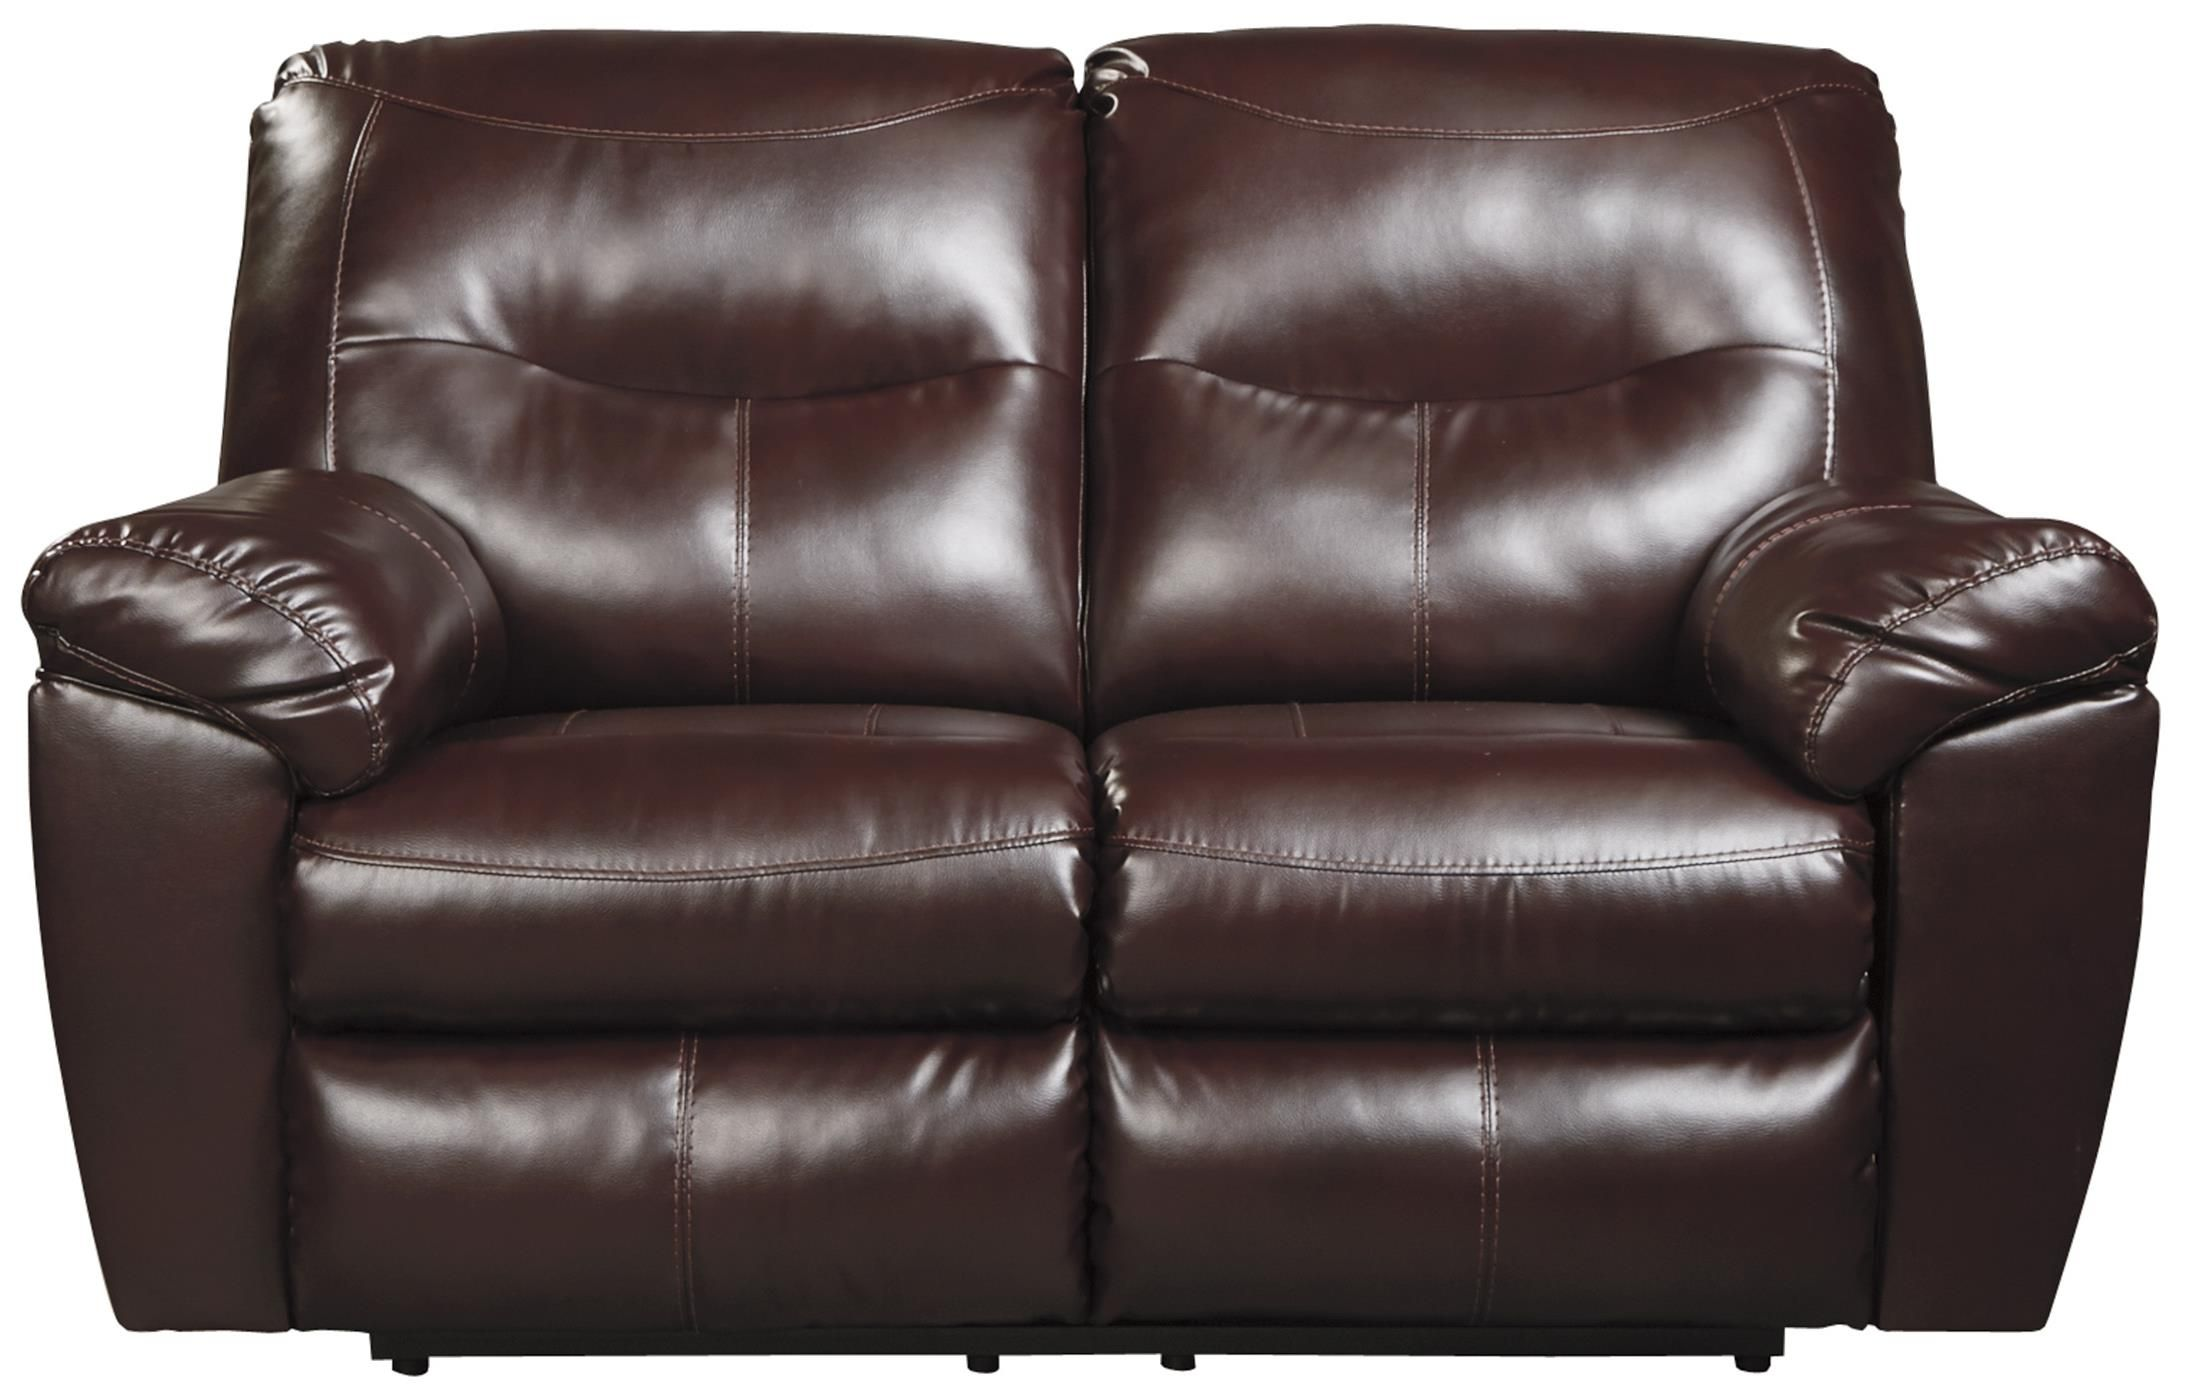 Signature Design By Ashley Kilzer Durablend Reclining Loveseat